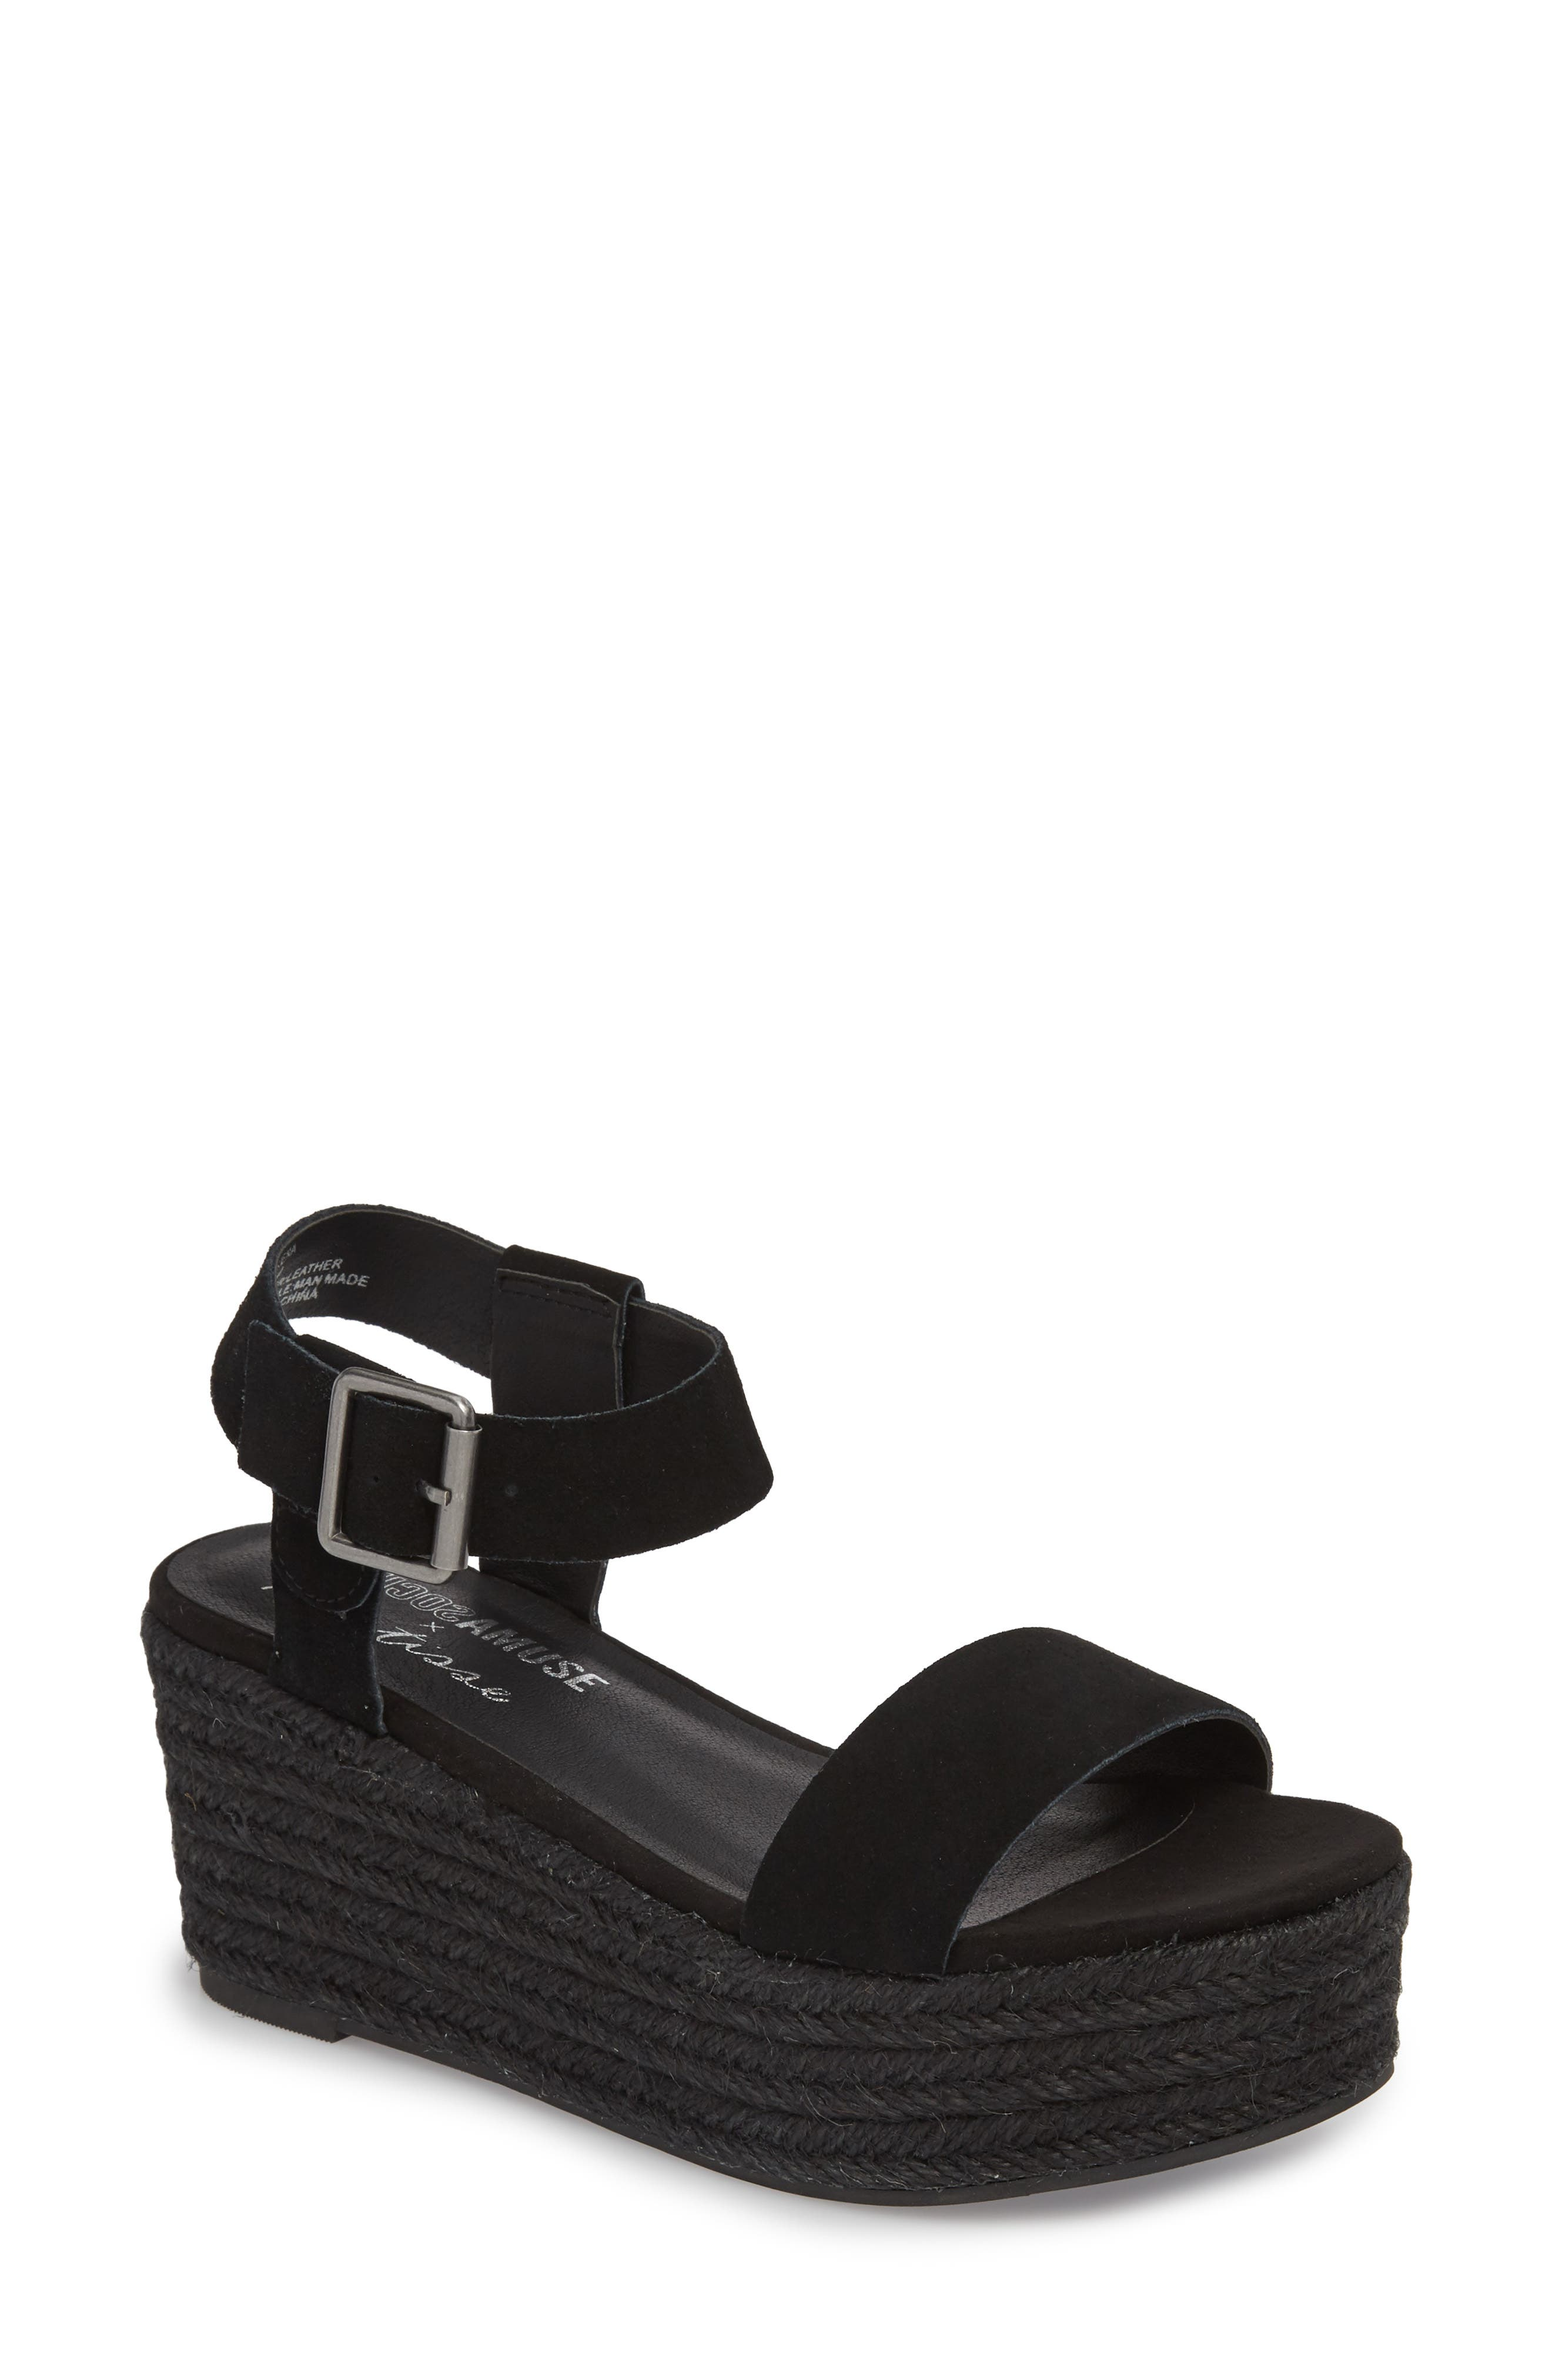 Amuse Society x Matisse Siena Wedge Sandal,                             Main thumbnail 1, color,                             017